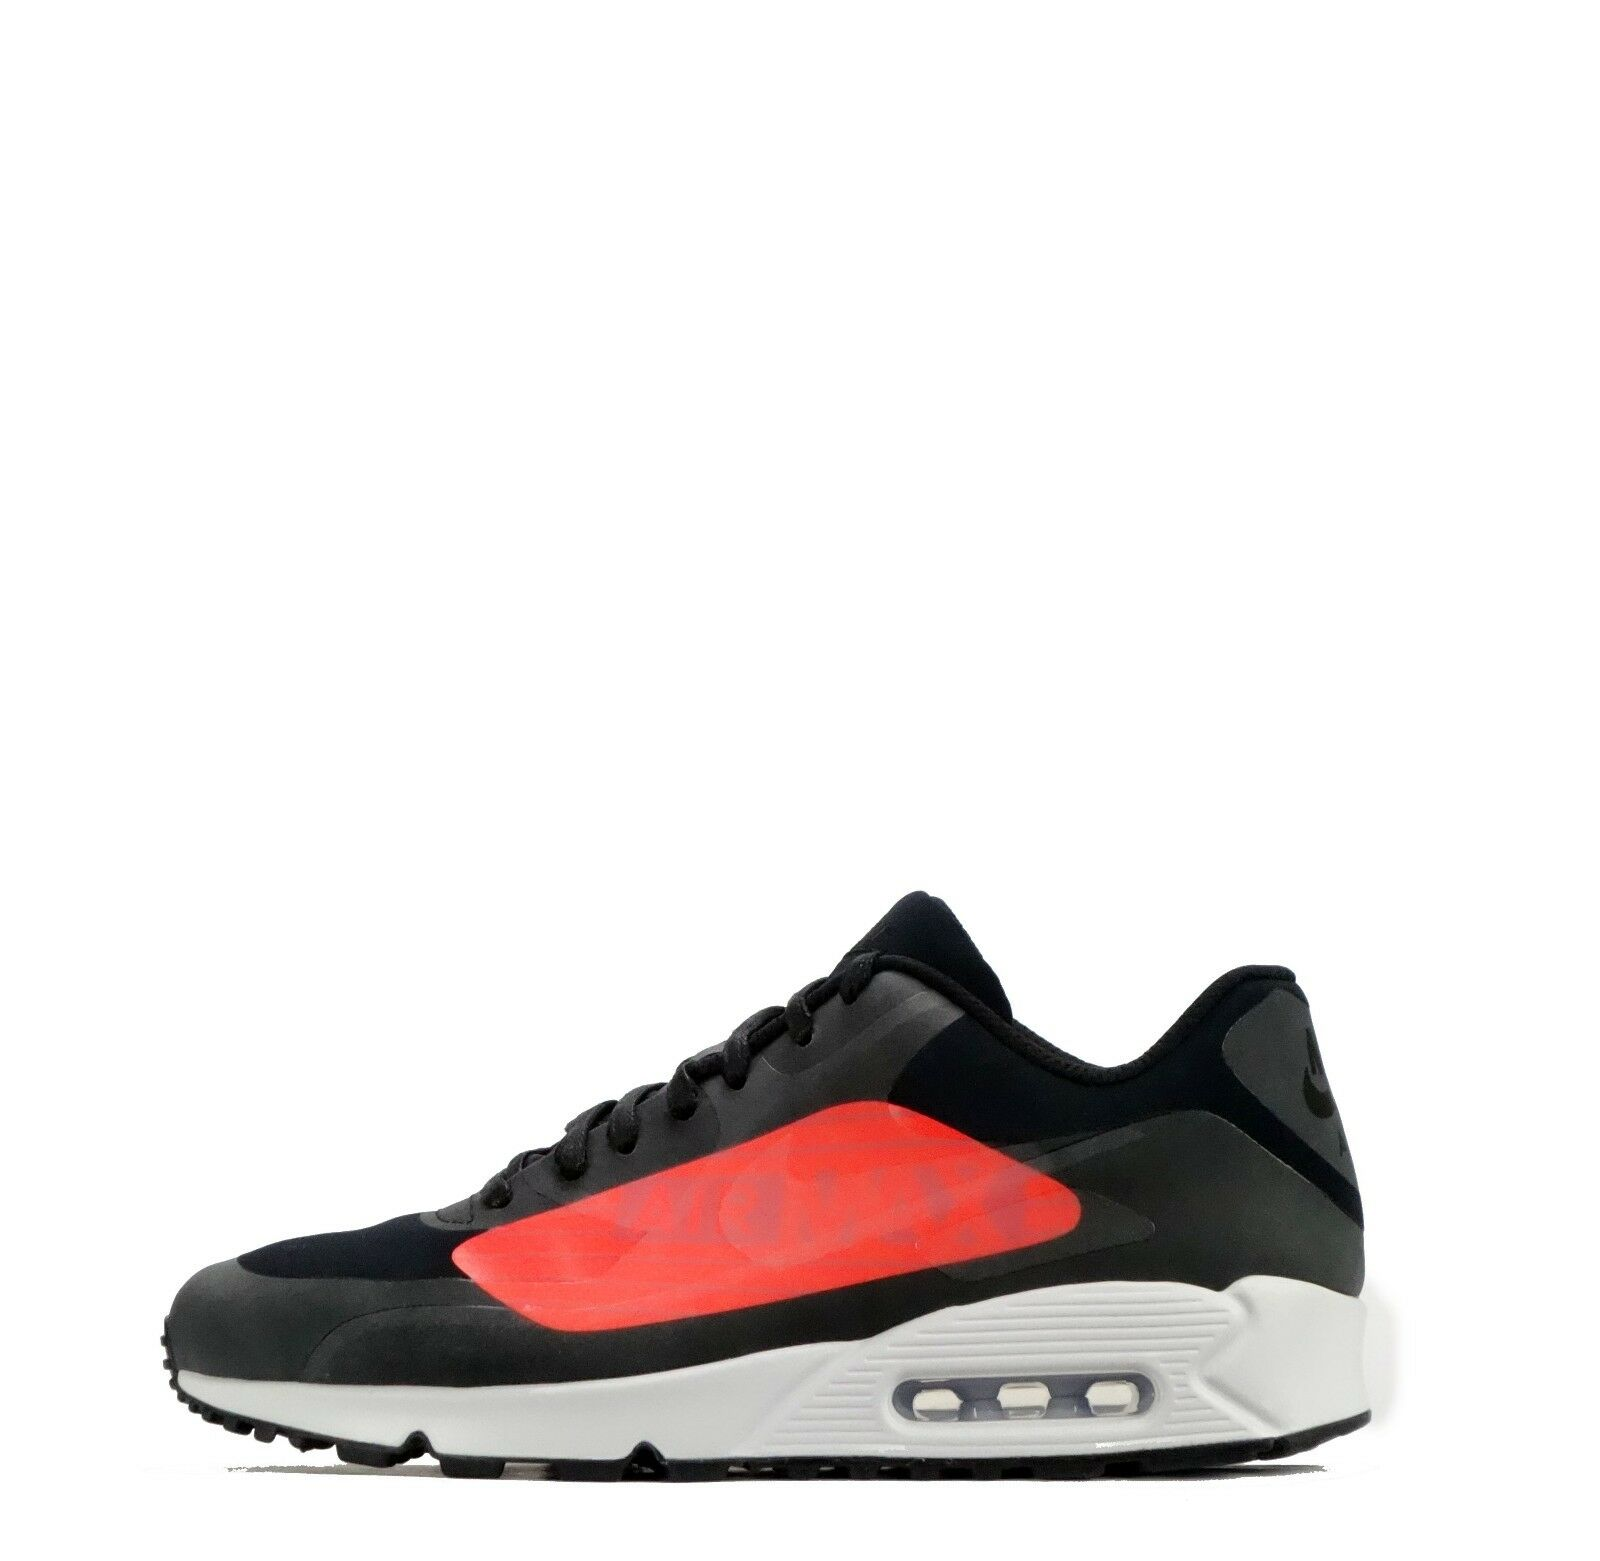 Nike Air Max 90 NS GPX Big Logo Men's Casual Walking Style shoes in Black